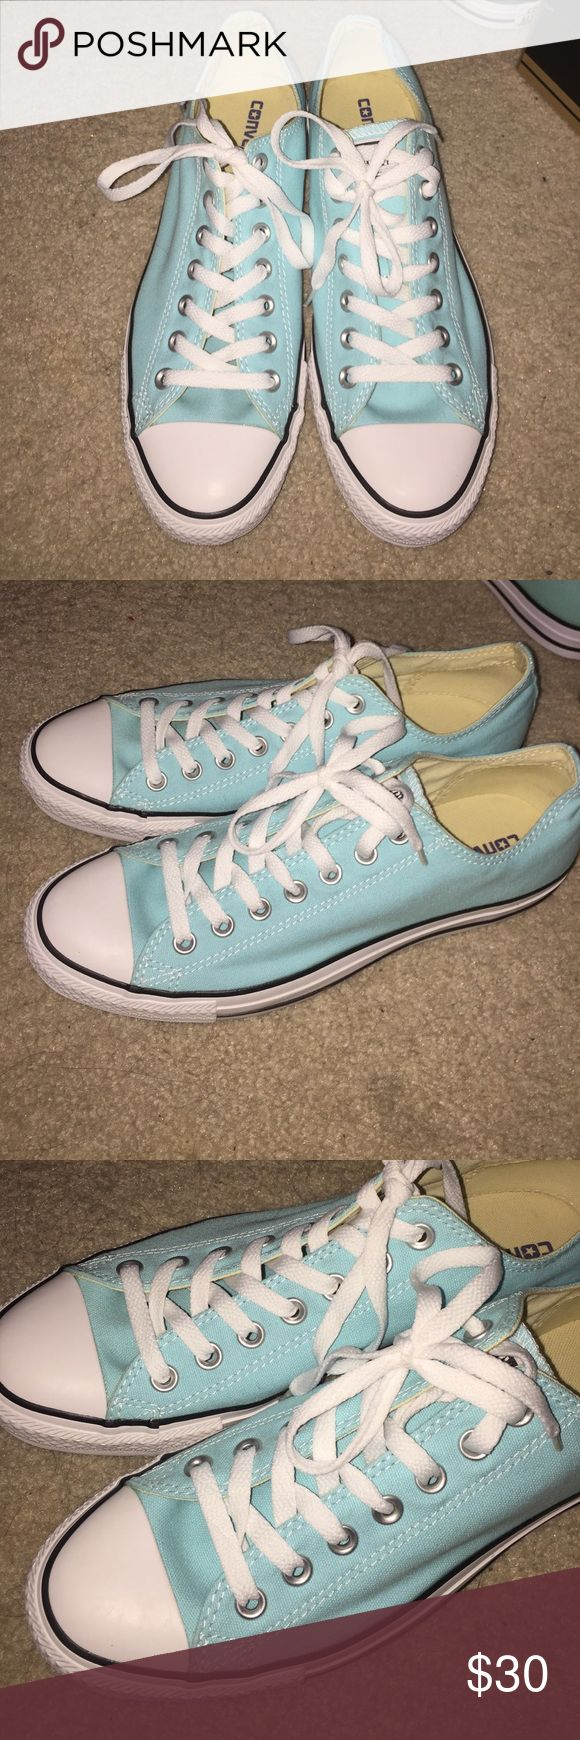 Converse All Star size 11 in women's Baby blue/ Tiffany blue converse. Never been worn! Got them today and realized they're too big! Converse Shoes Sneakers